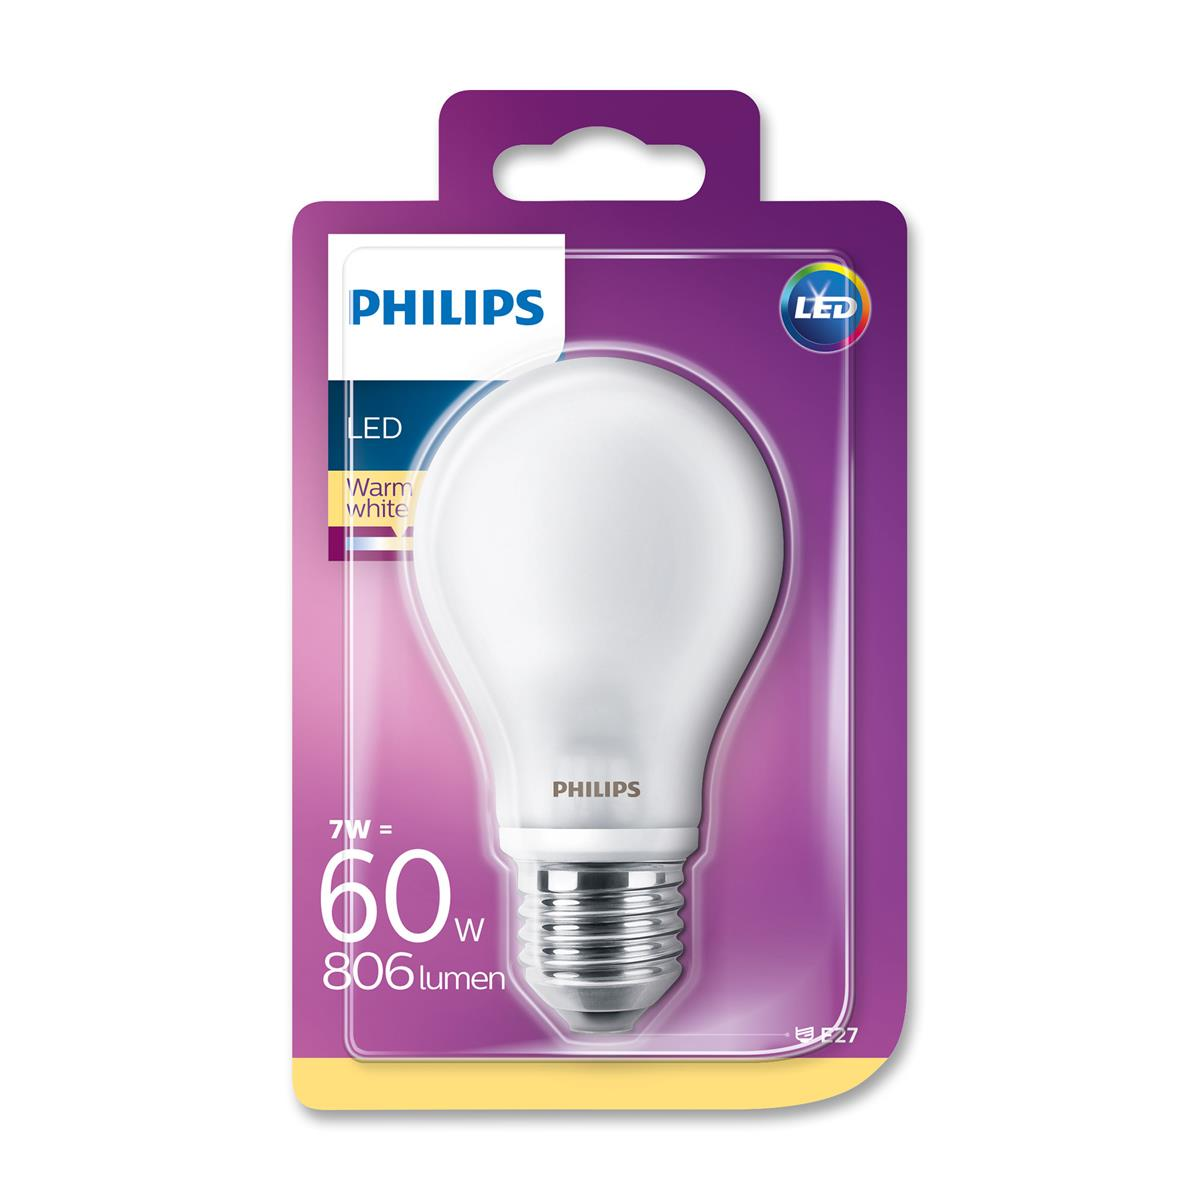 Top Philips LED Lampe 60W E27 online bestellen | BILLA SO36